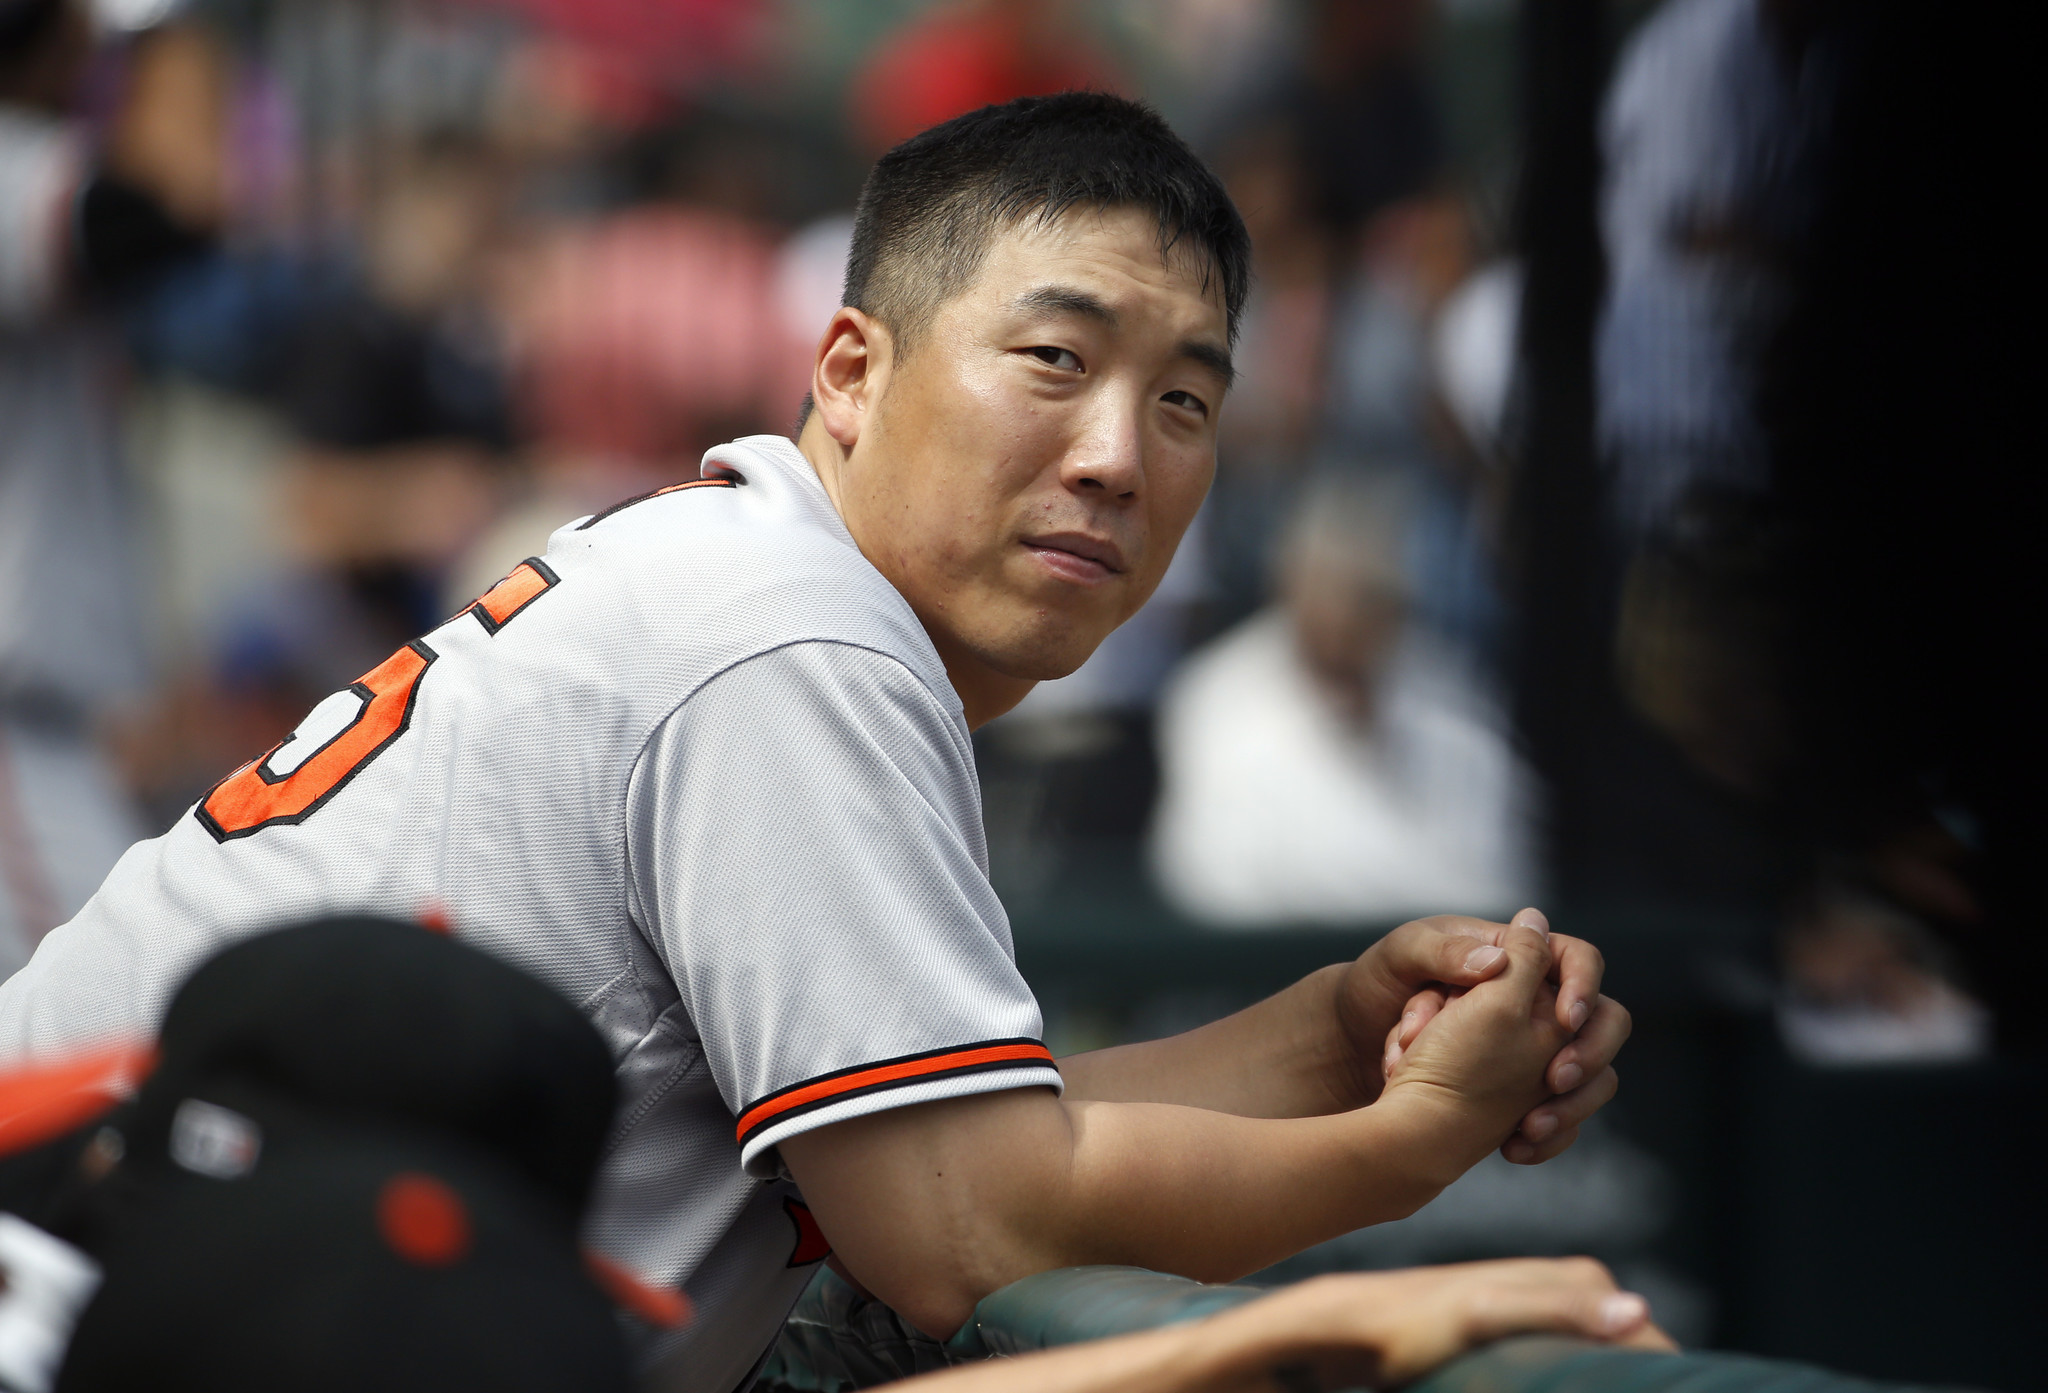 Bal-orioles-hyun-soo-kim-finally-gets-chance-to-be-solution-to-team-s-issues-against-left-handers-20160817